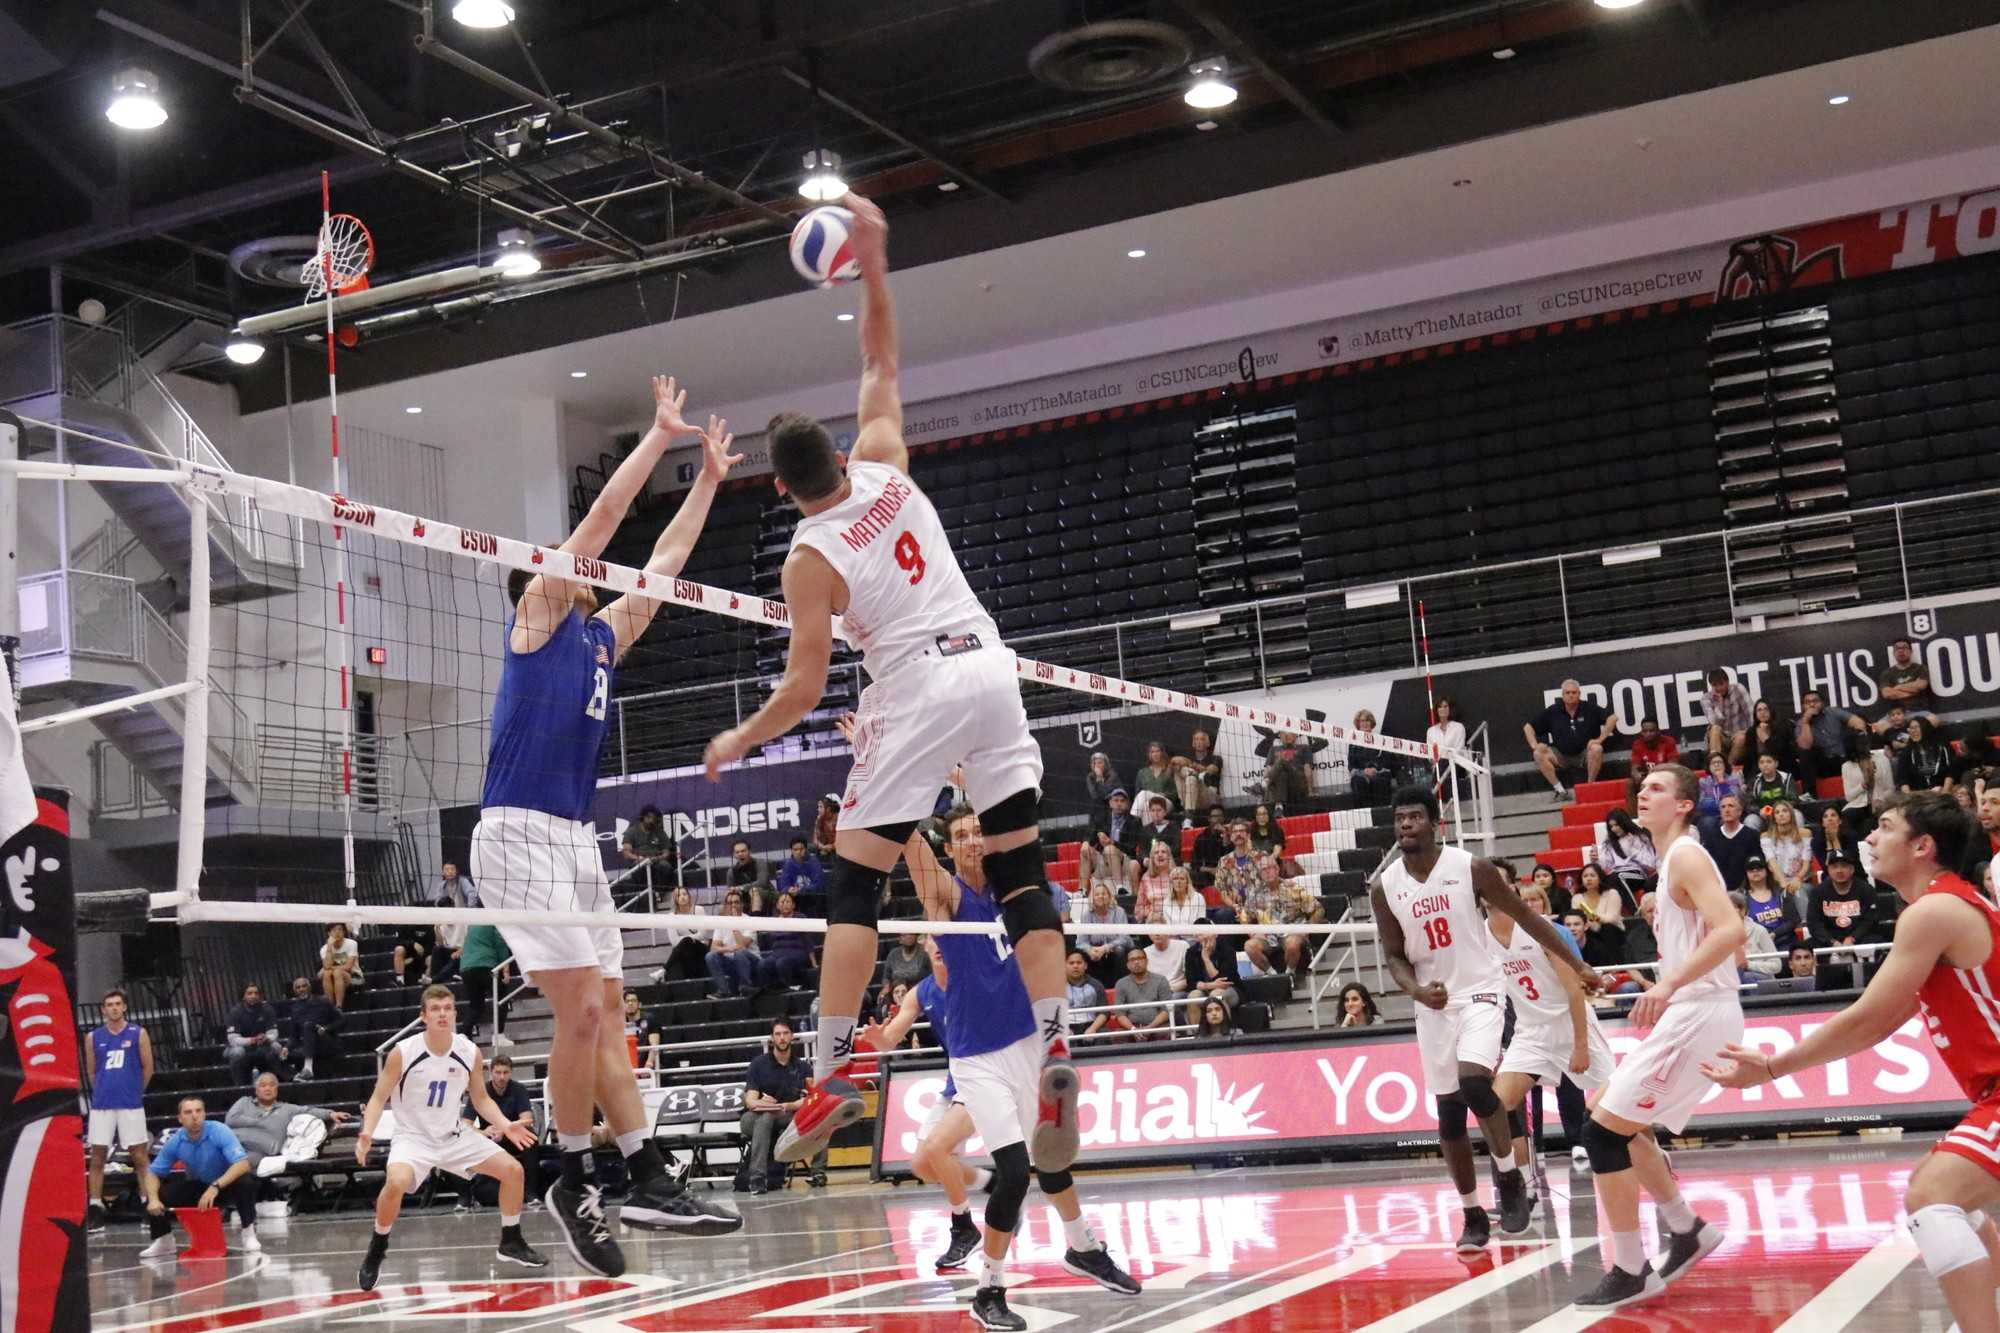 csun mens volleyball player in white goes to spike the ball